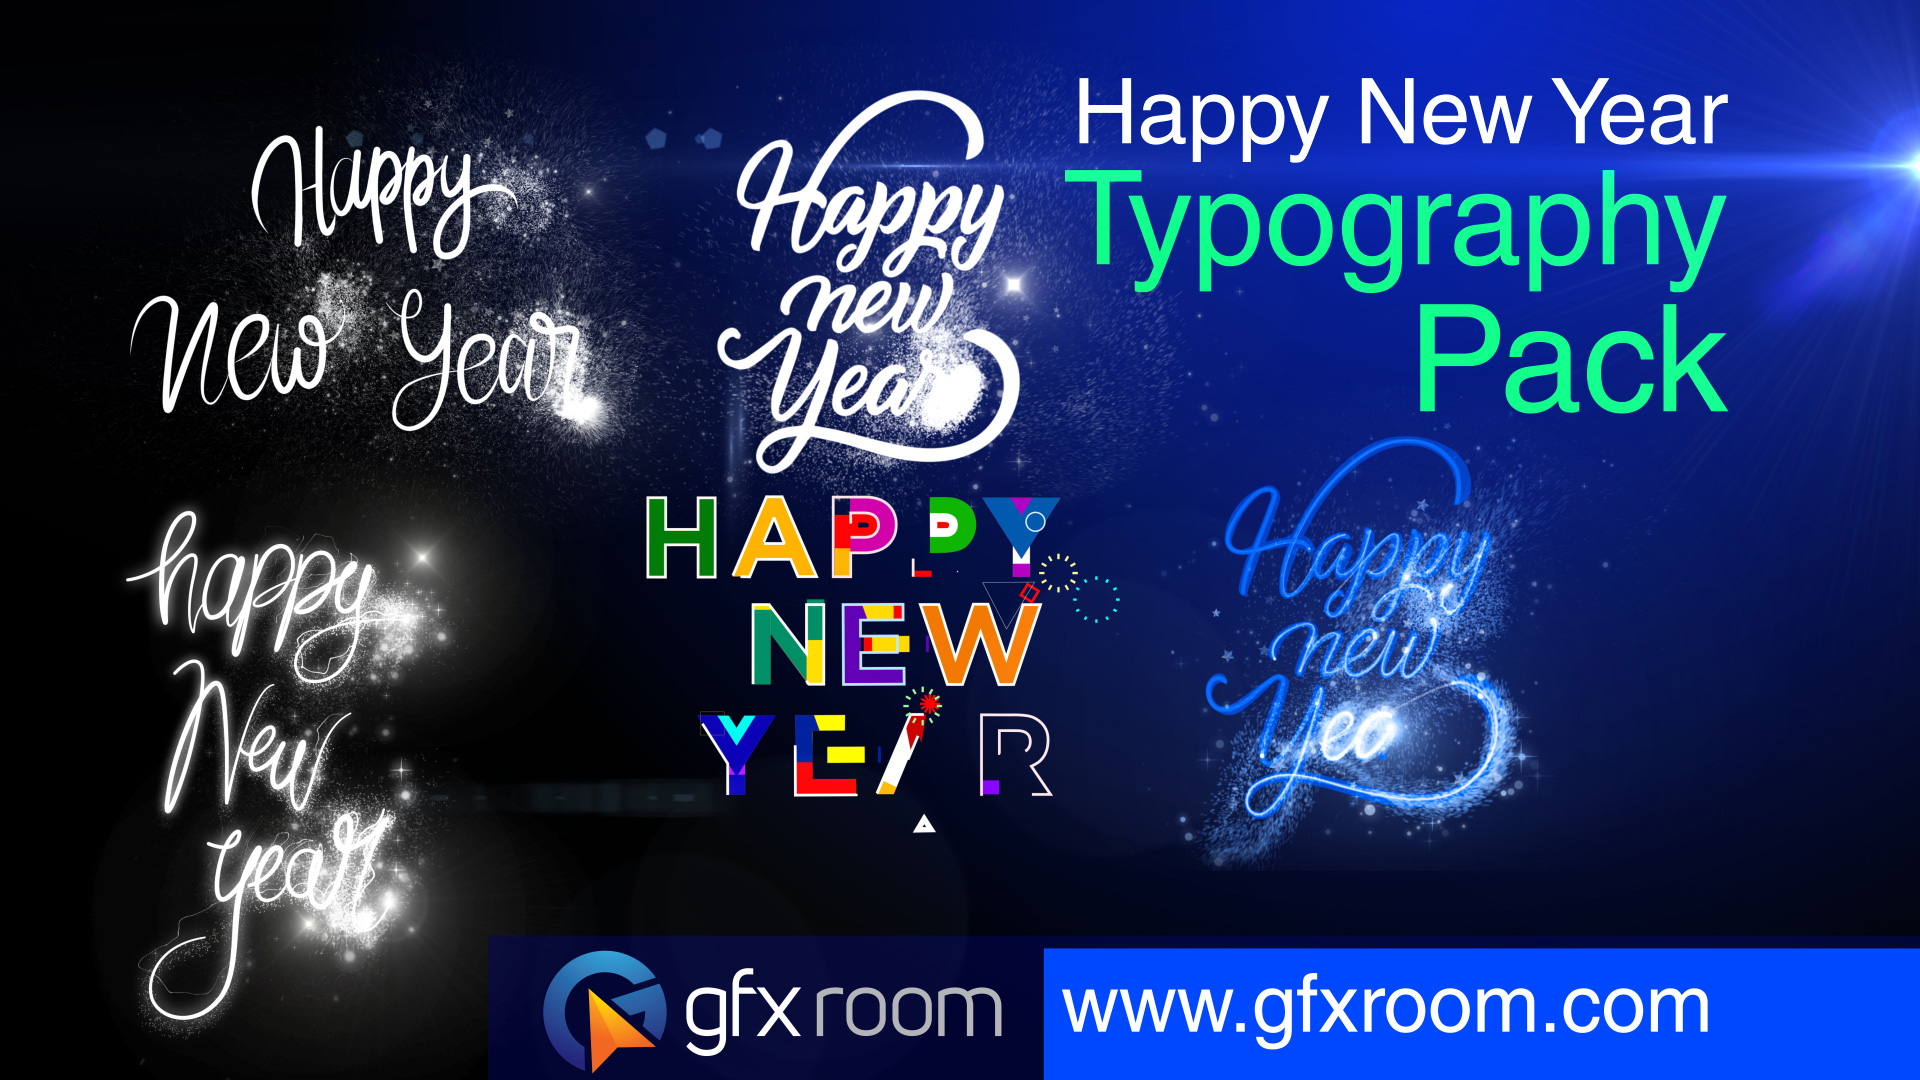 Happy New Year Typography Pack Animation